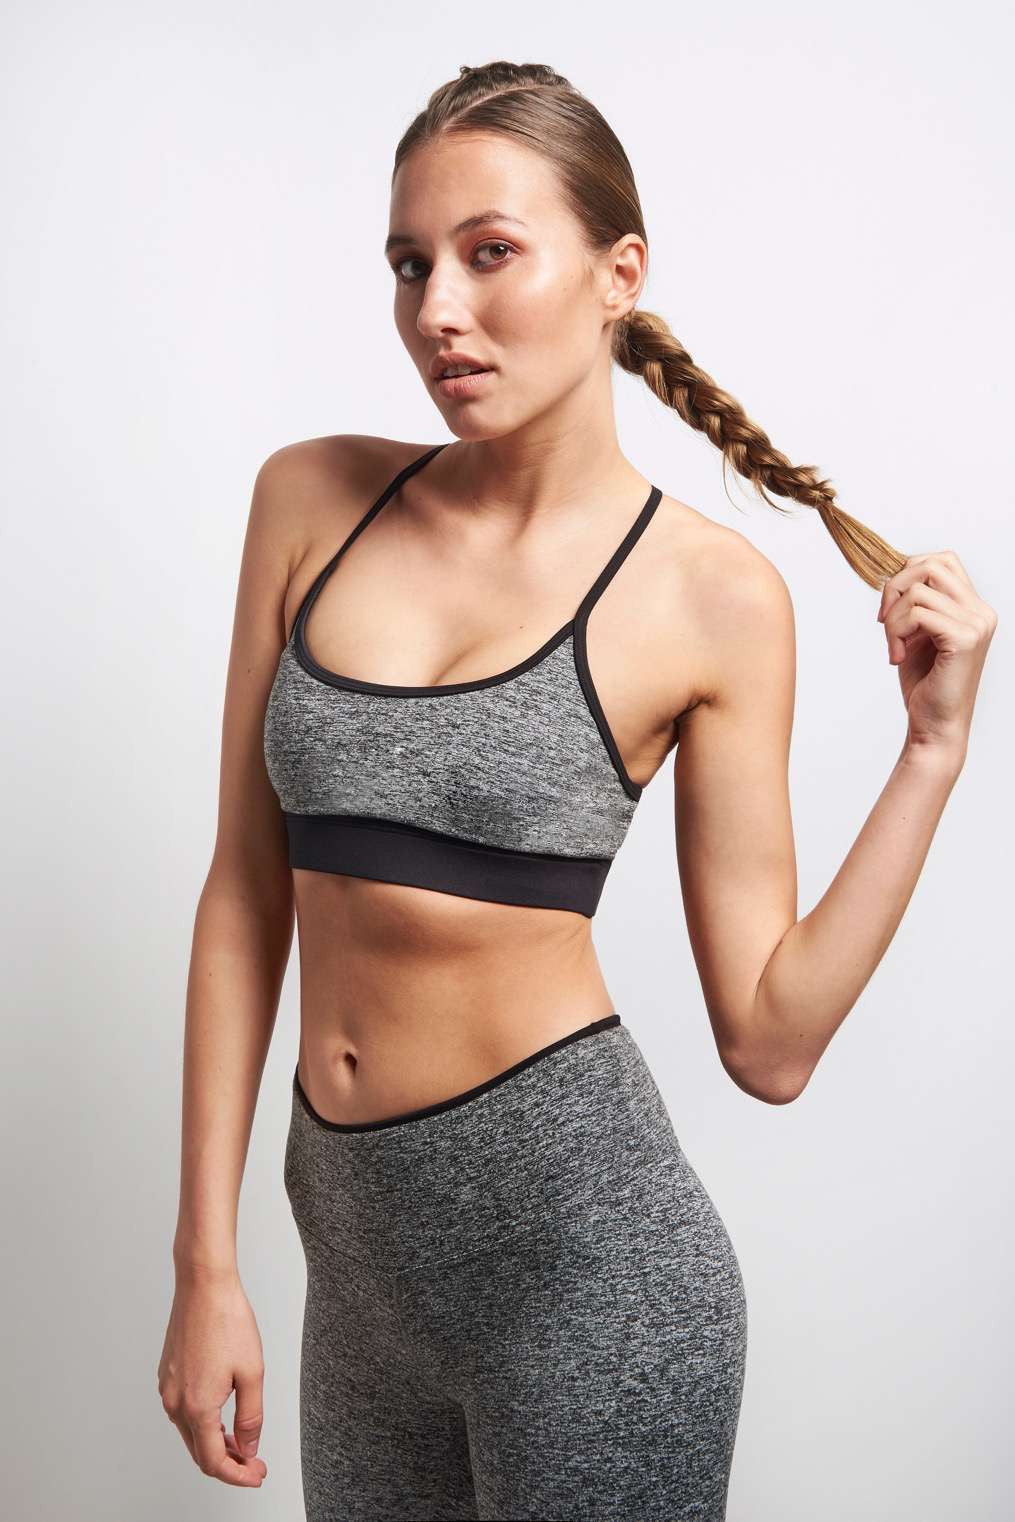 Koral Lucent Sports Bra - Heather Grey/Black image 1 - The Sports Edit